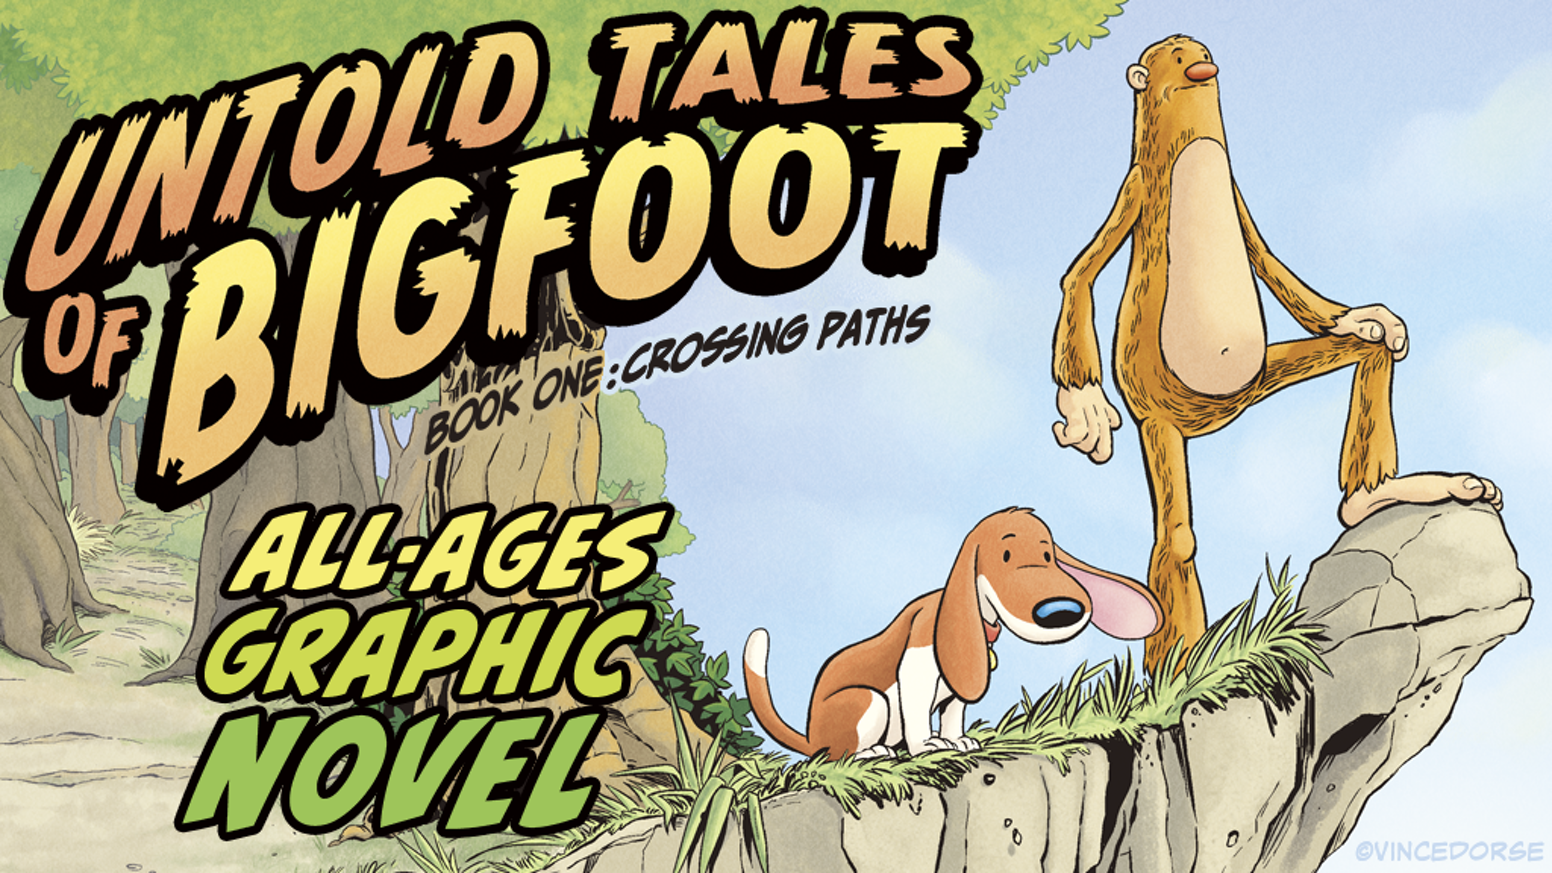 Untold Tales of Bigfoot Graphic Novel, an award-winning, all-ages comic about a lonesome Bigfoot and a lost dog named Scout.